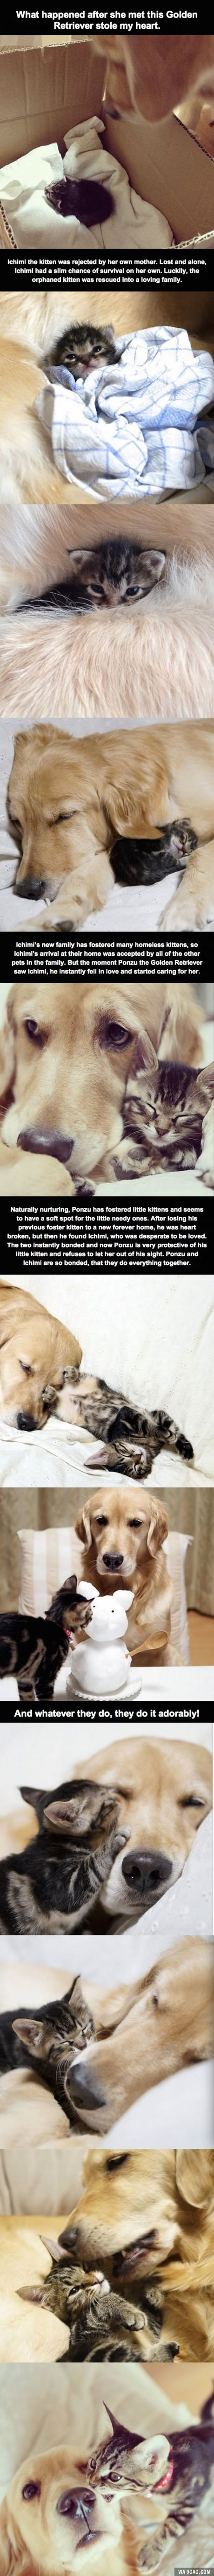 Golden retriever bonding to rejected kitten to keep it safe.. awwwww melted my heart